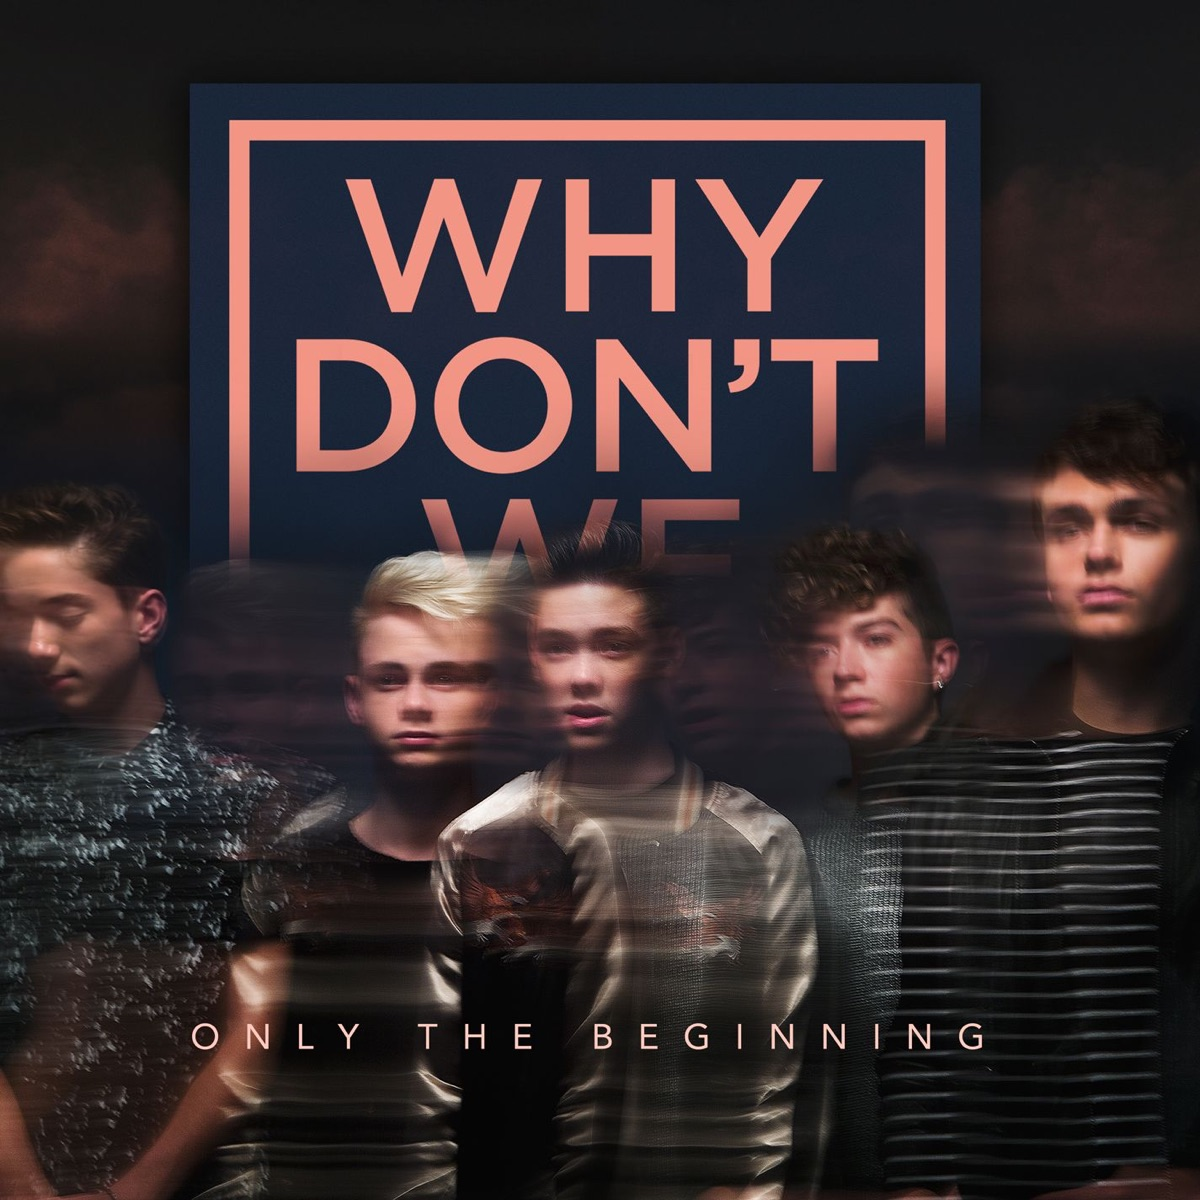 Only the Beginning - EP Why Dont We CD cover